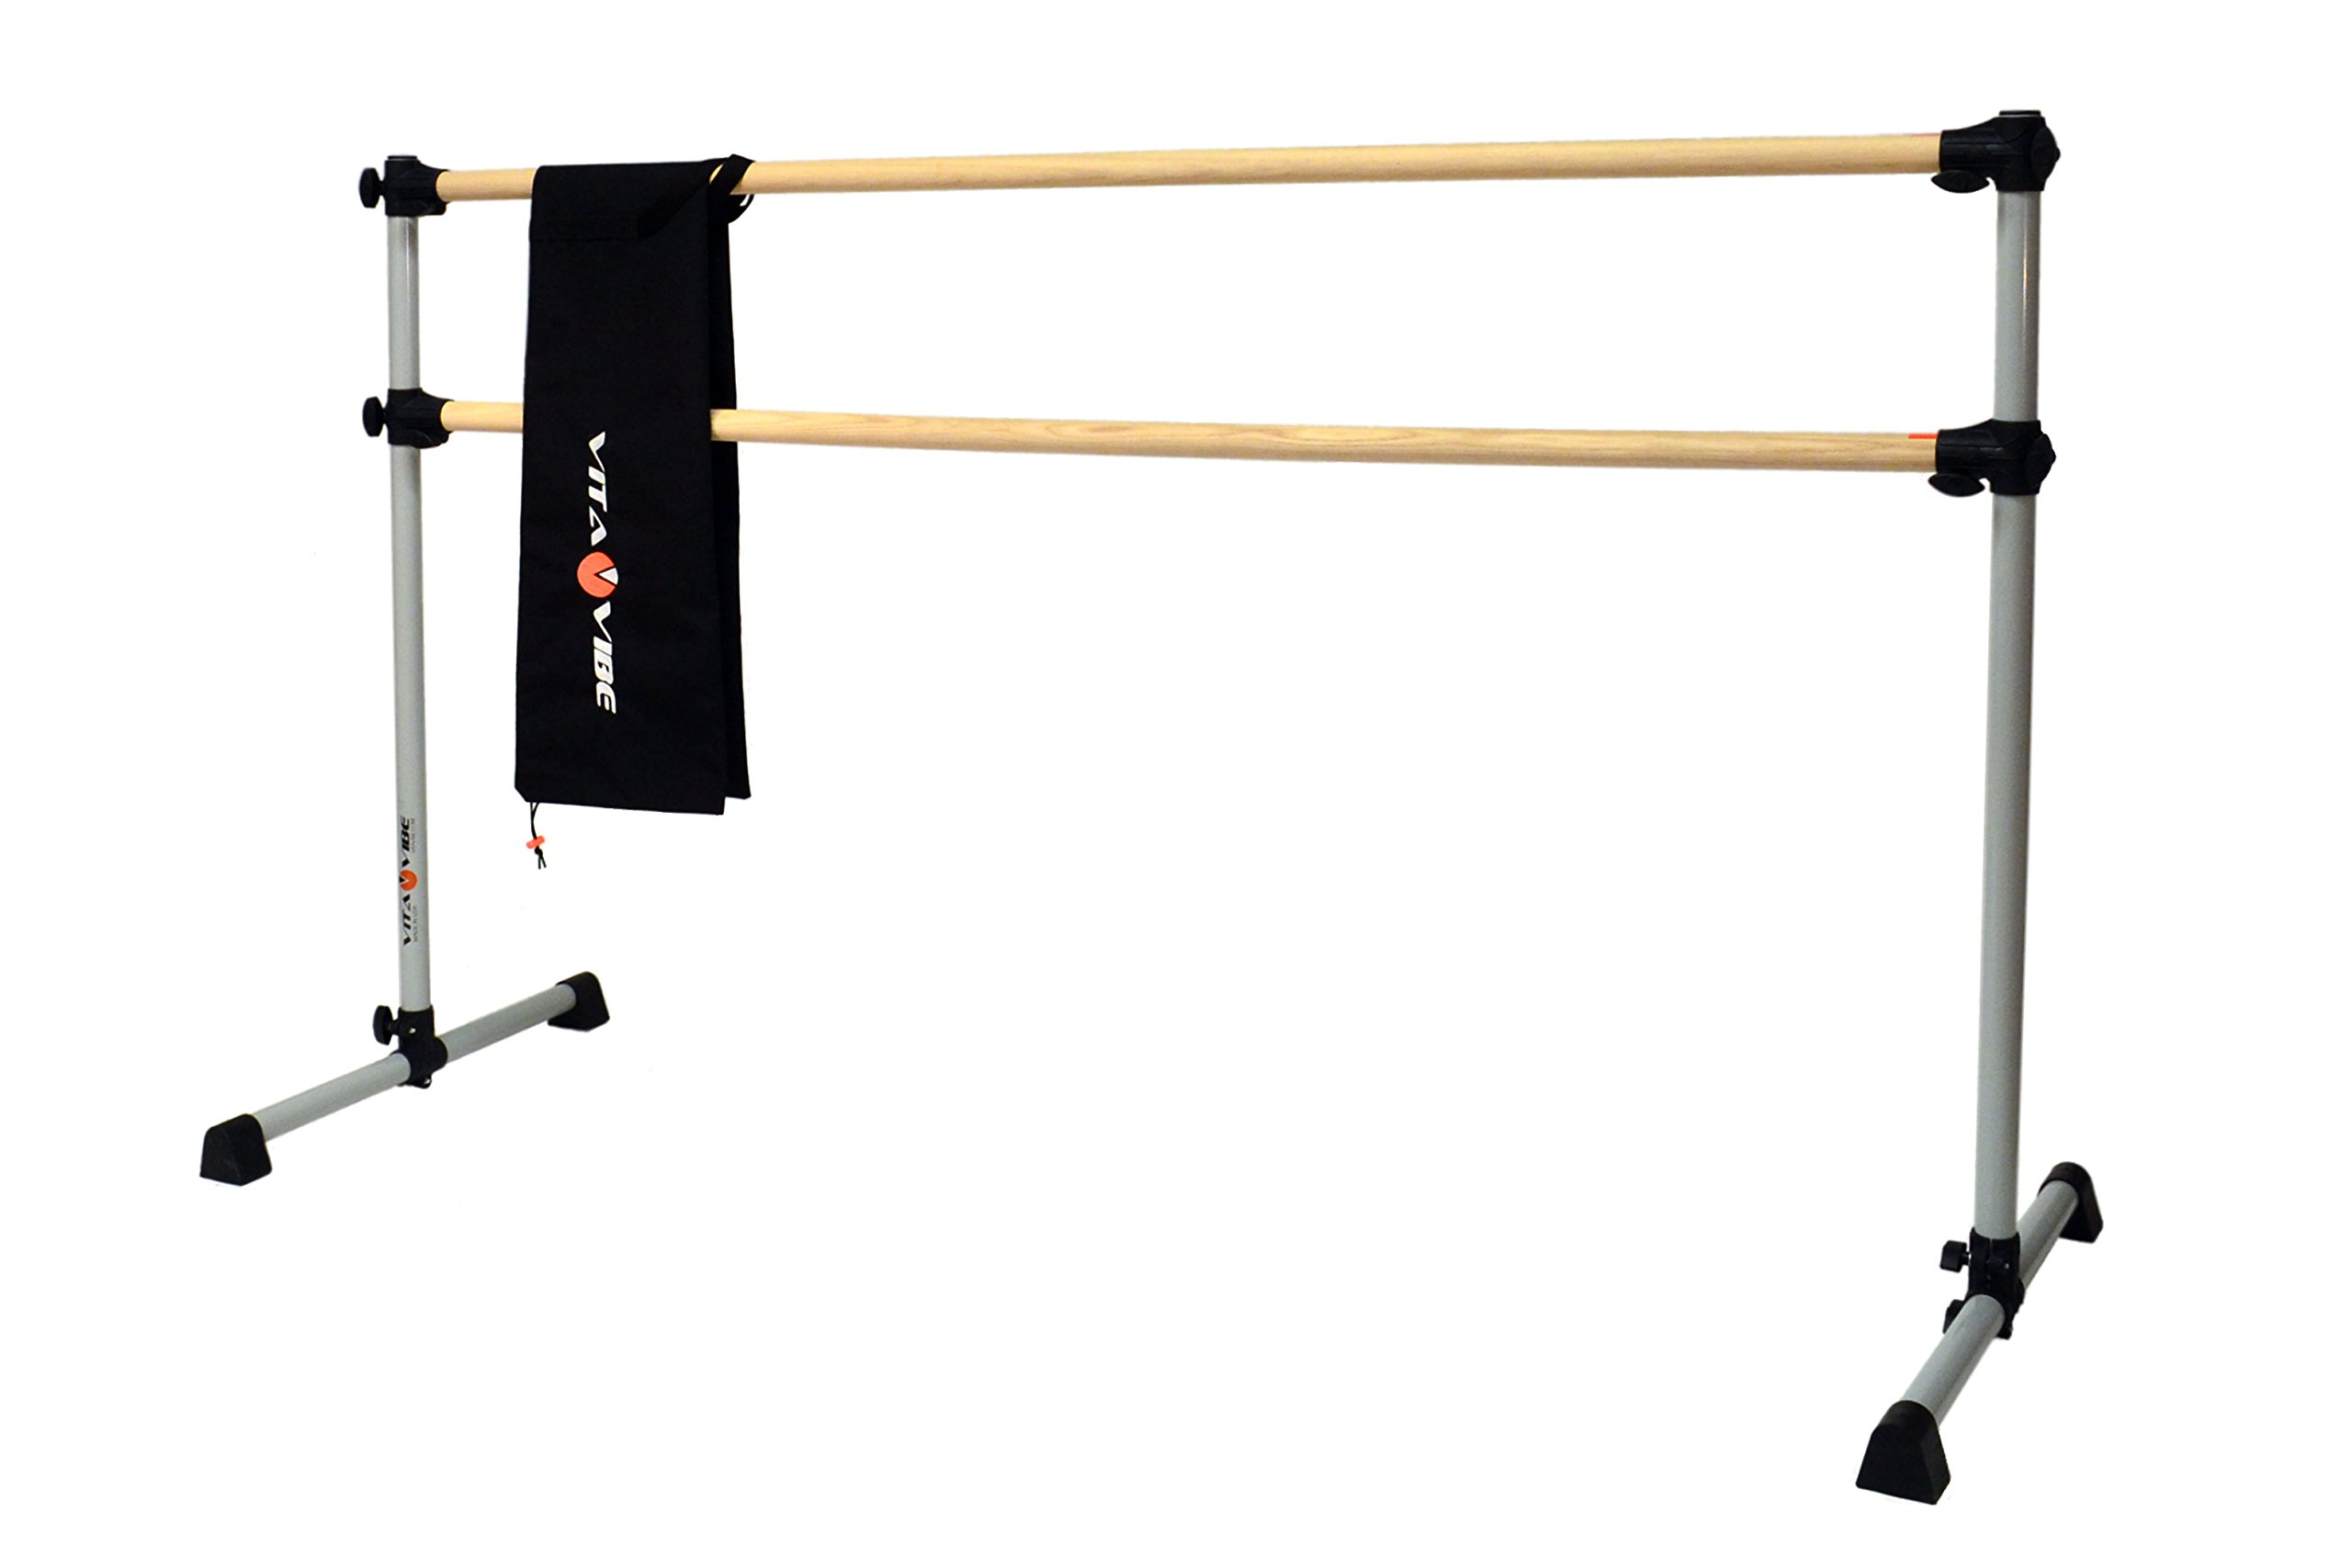 Vita Vibe Traditional Wood Ballet Barre - DBNB4-W 4ft -Portable Double Bar w Carry Bag- Freestanding Stretch/Dance Bar - Vita Vibe - USA Made by Vita Vibe Prodigy Ballet Barres